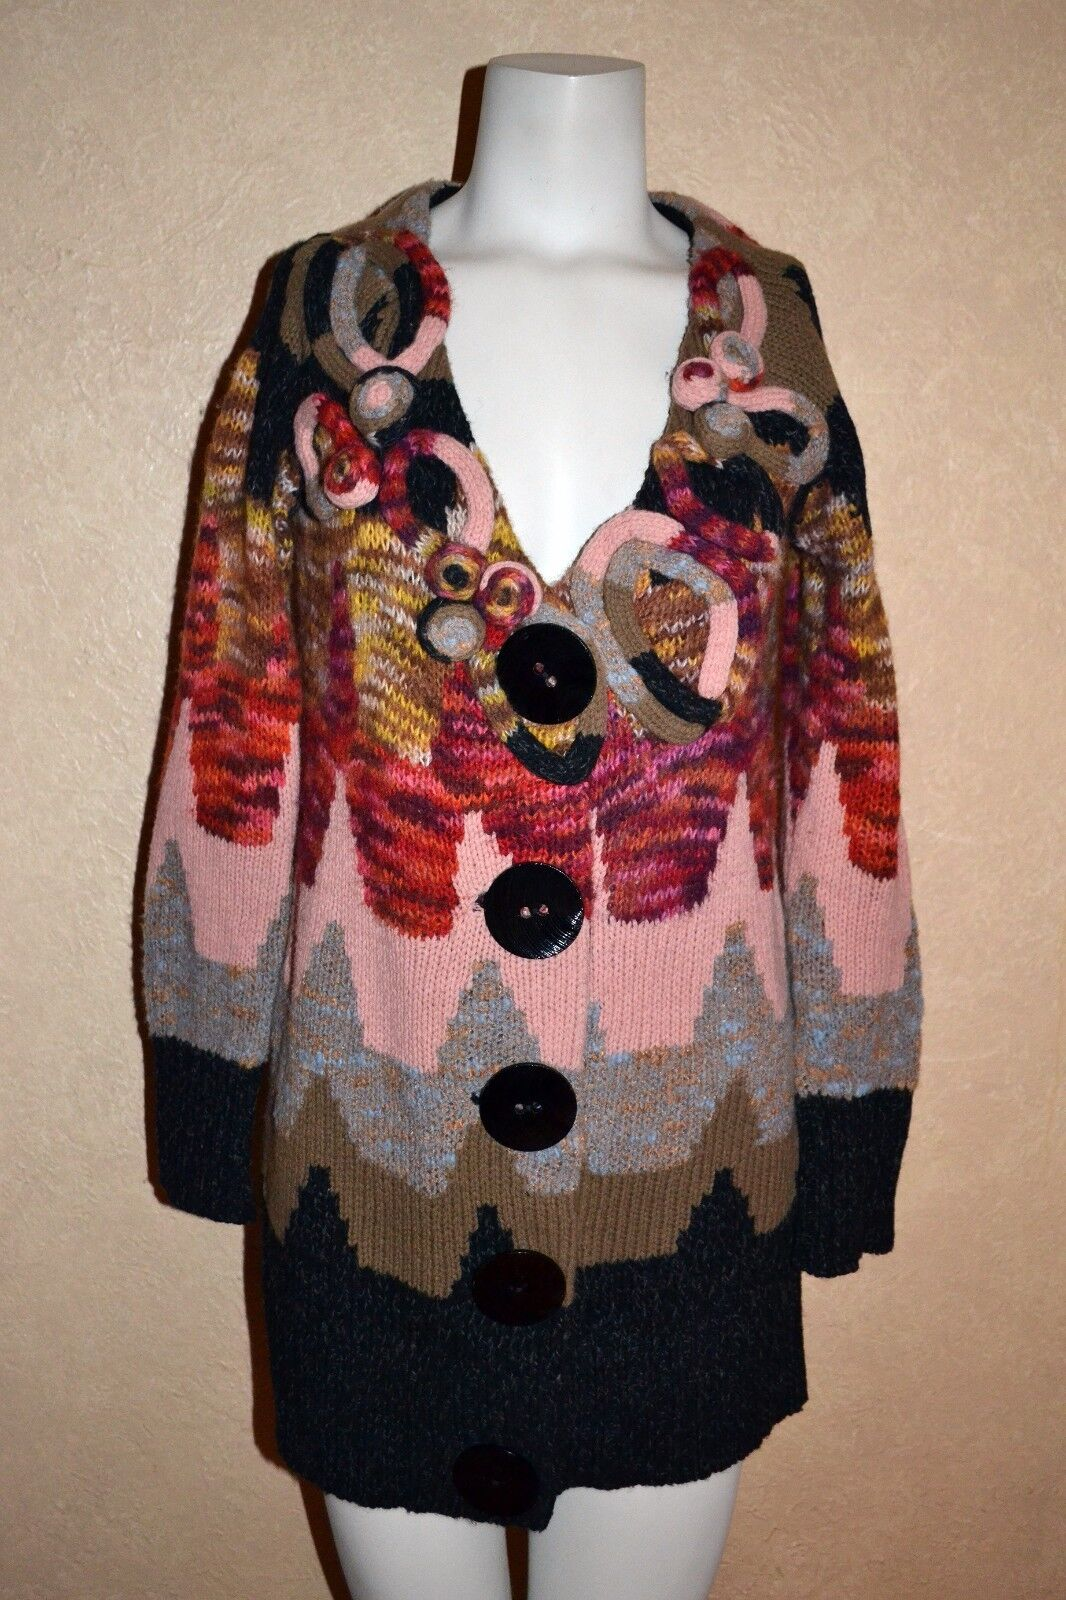 ANTHROPOLOGIE SLEEPING ON SNOW SNOW SNOW 3D Knit pinks Cardigan Sweater Lg Buttons M RARE d24c15